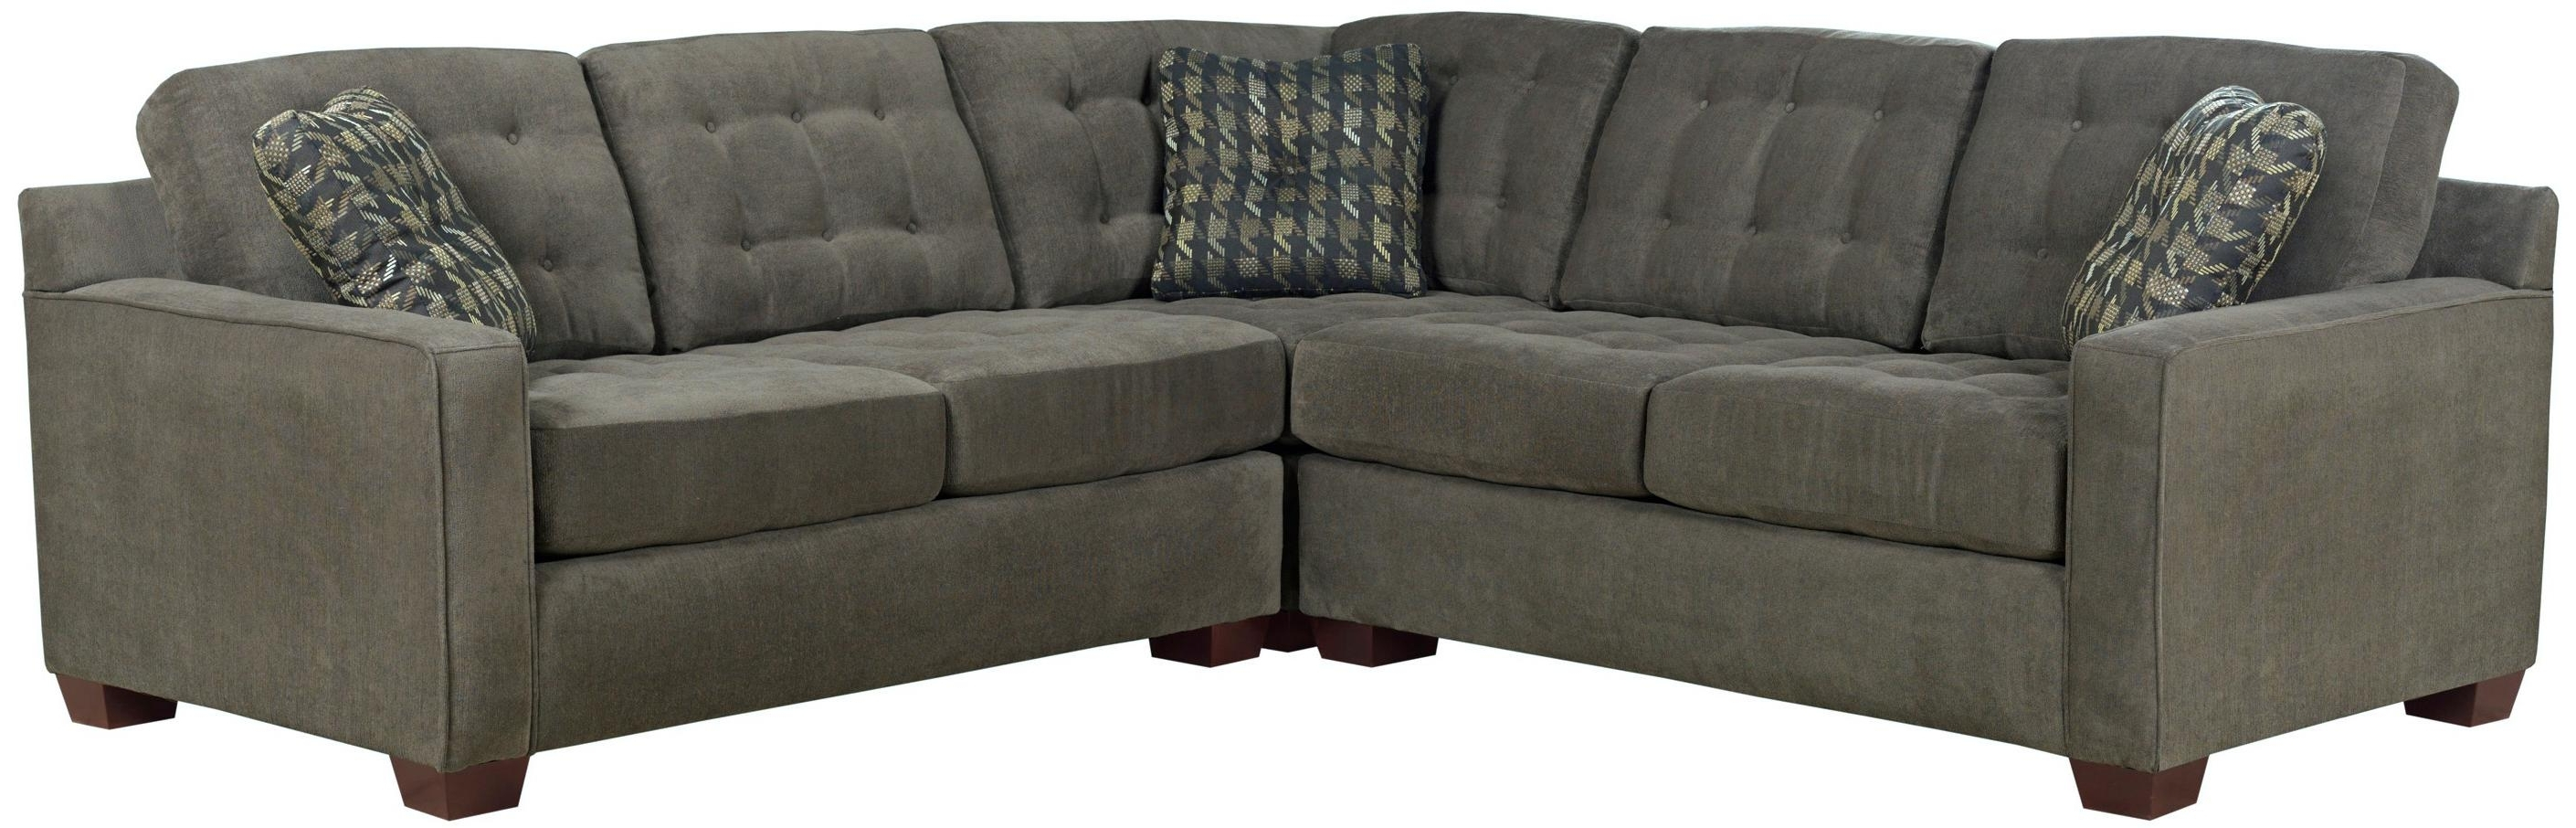 Broyhill Furniture Tribeca Contemporary L Shaped Sectional Sofa Inside 2018 Broyhill Sectional Sofas (View 7 of 15)